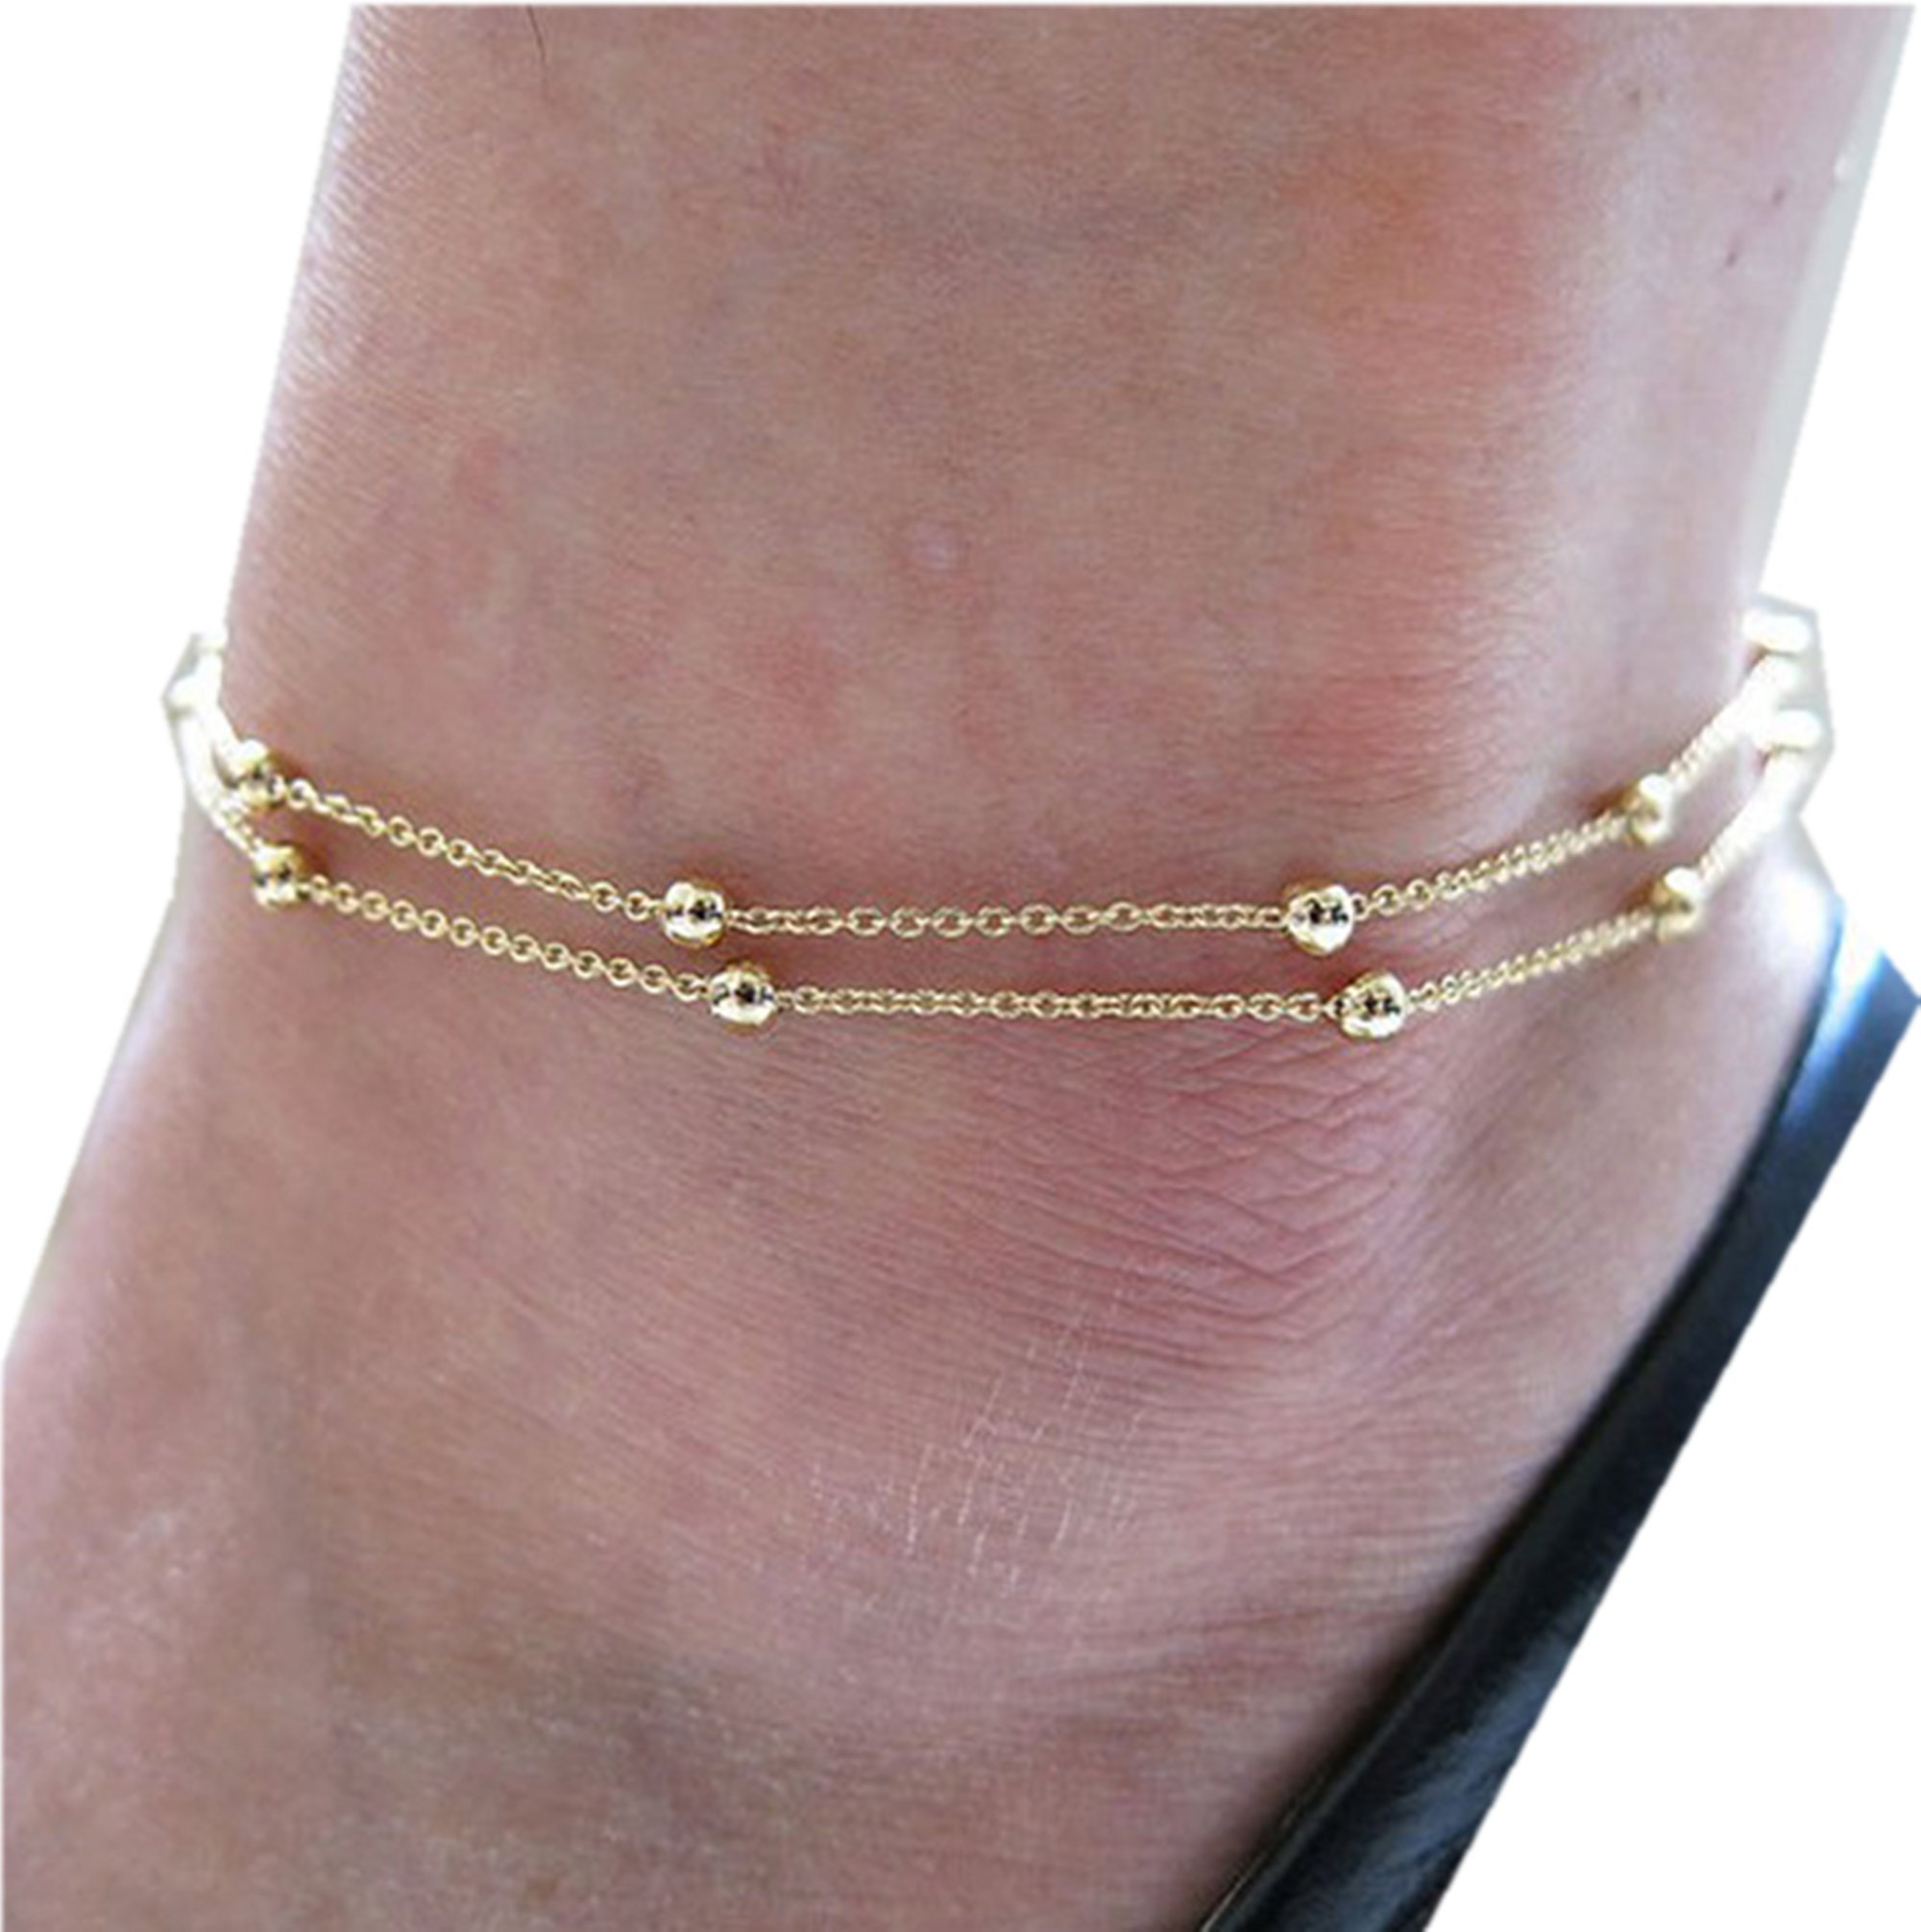 gifts xlmodel bridal bracelet fashion ankle item silver gold crystal cheville jewelry anklet diamond rhinestone anklets photo